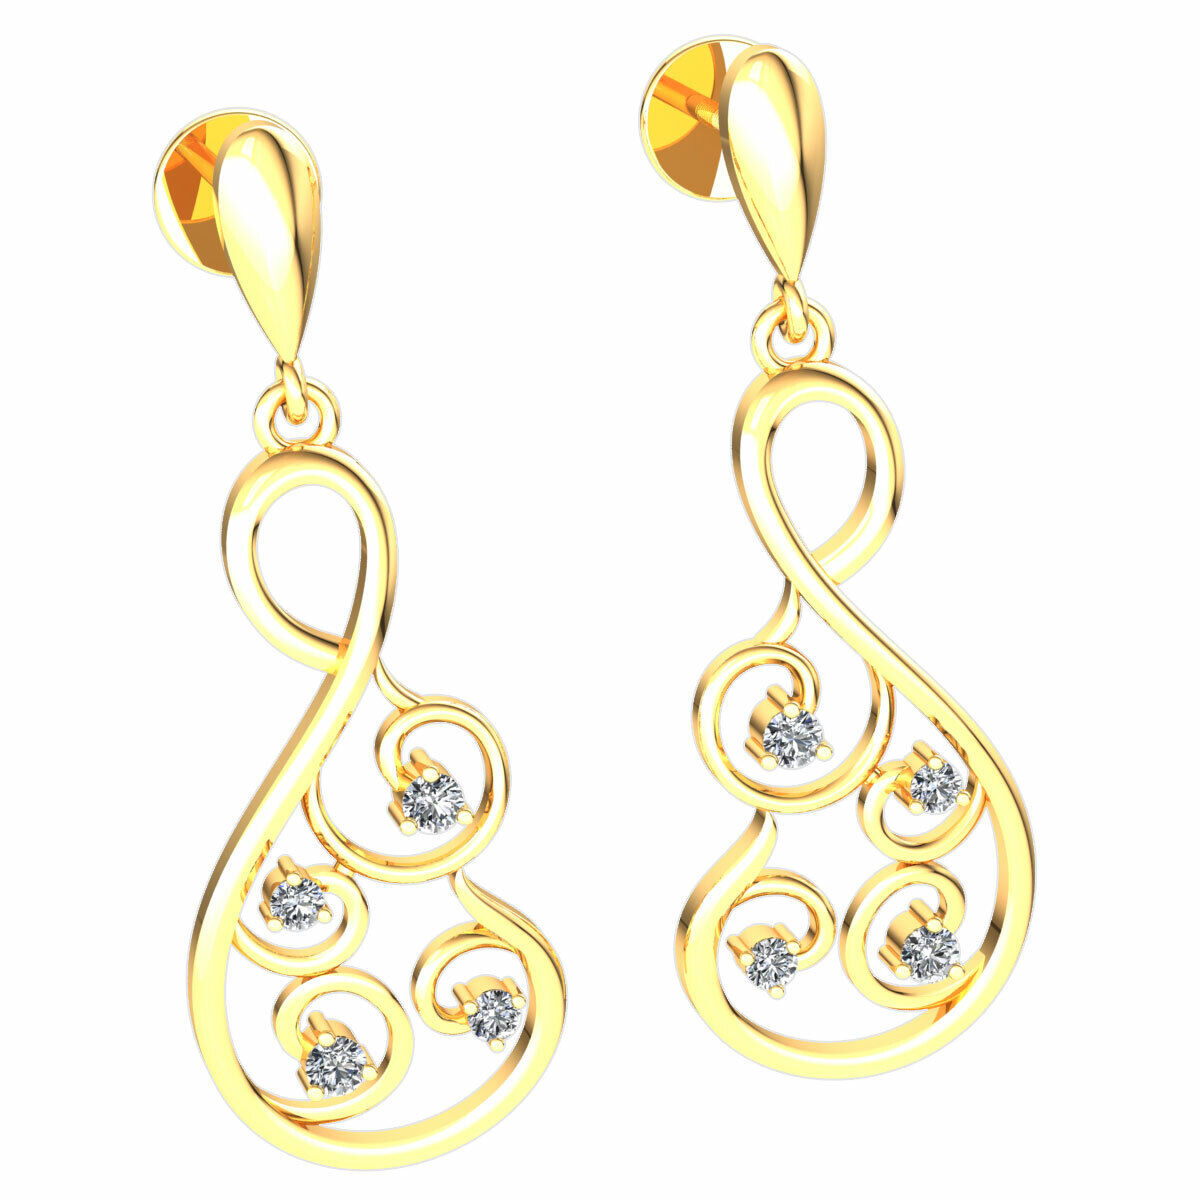 Genuine 0.1ctw Round Cut Diamond Ladies Infinity Designer Earrings 14K gold